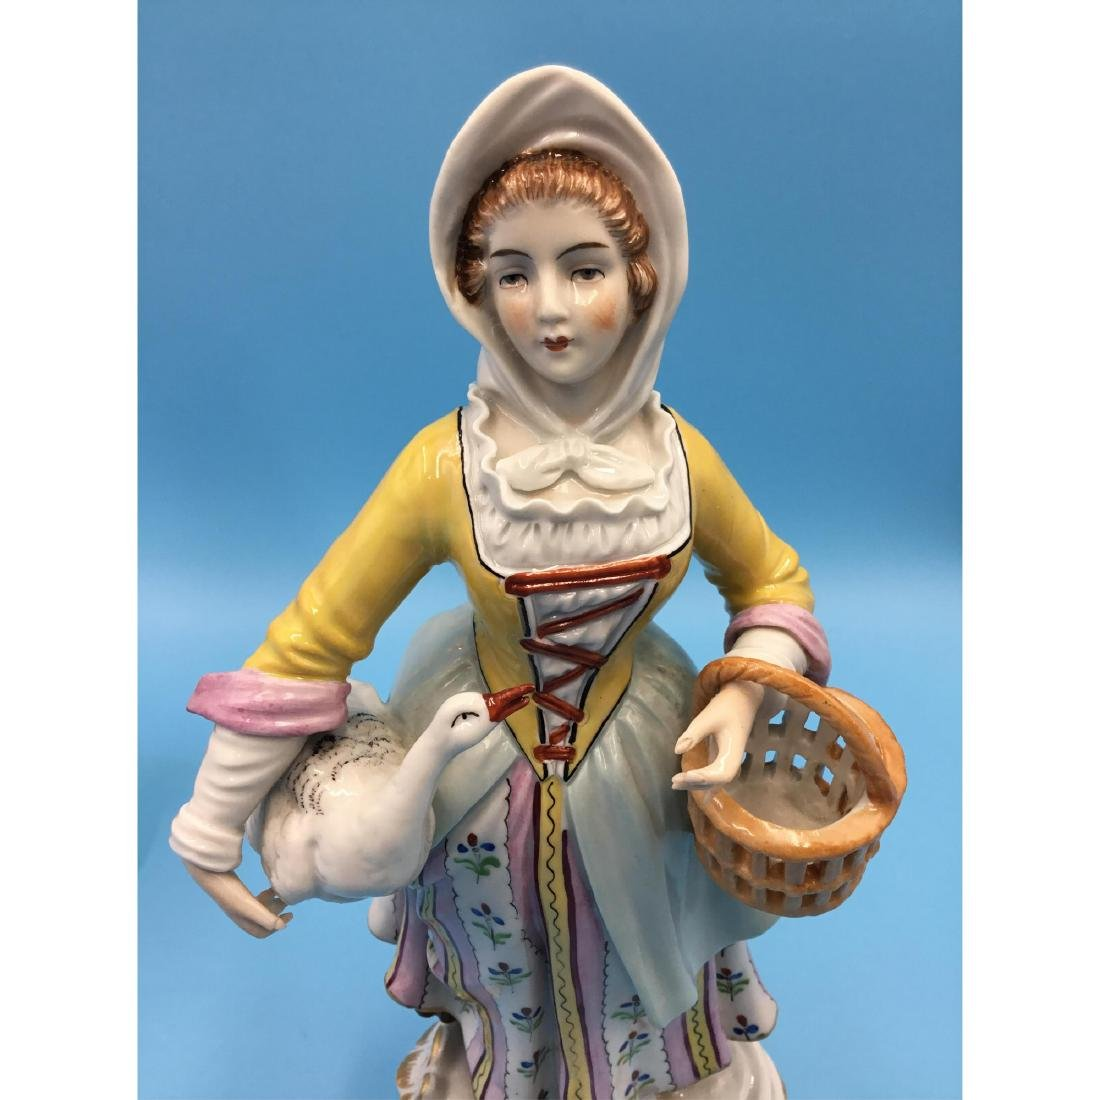 PAIR OF SITZENDORF GERMAN PORCELAIN FIGURINES - 7